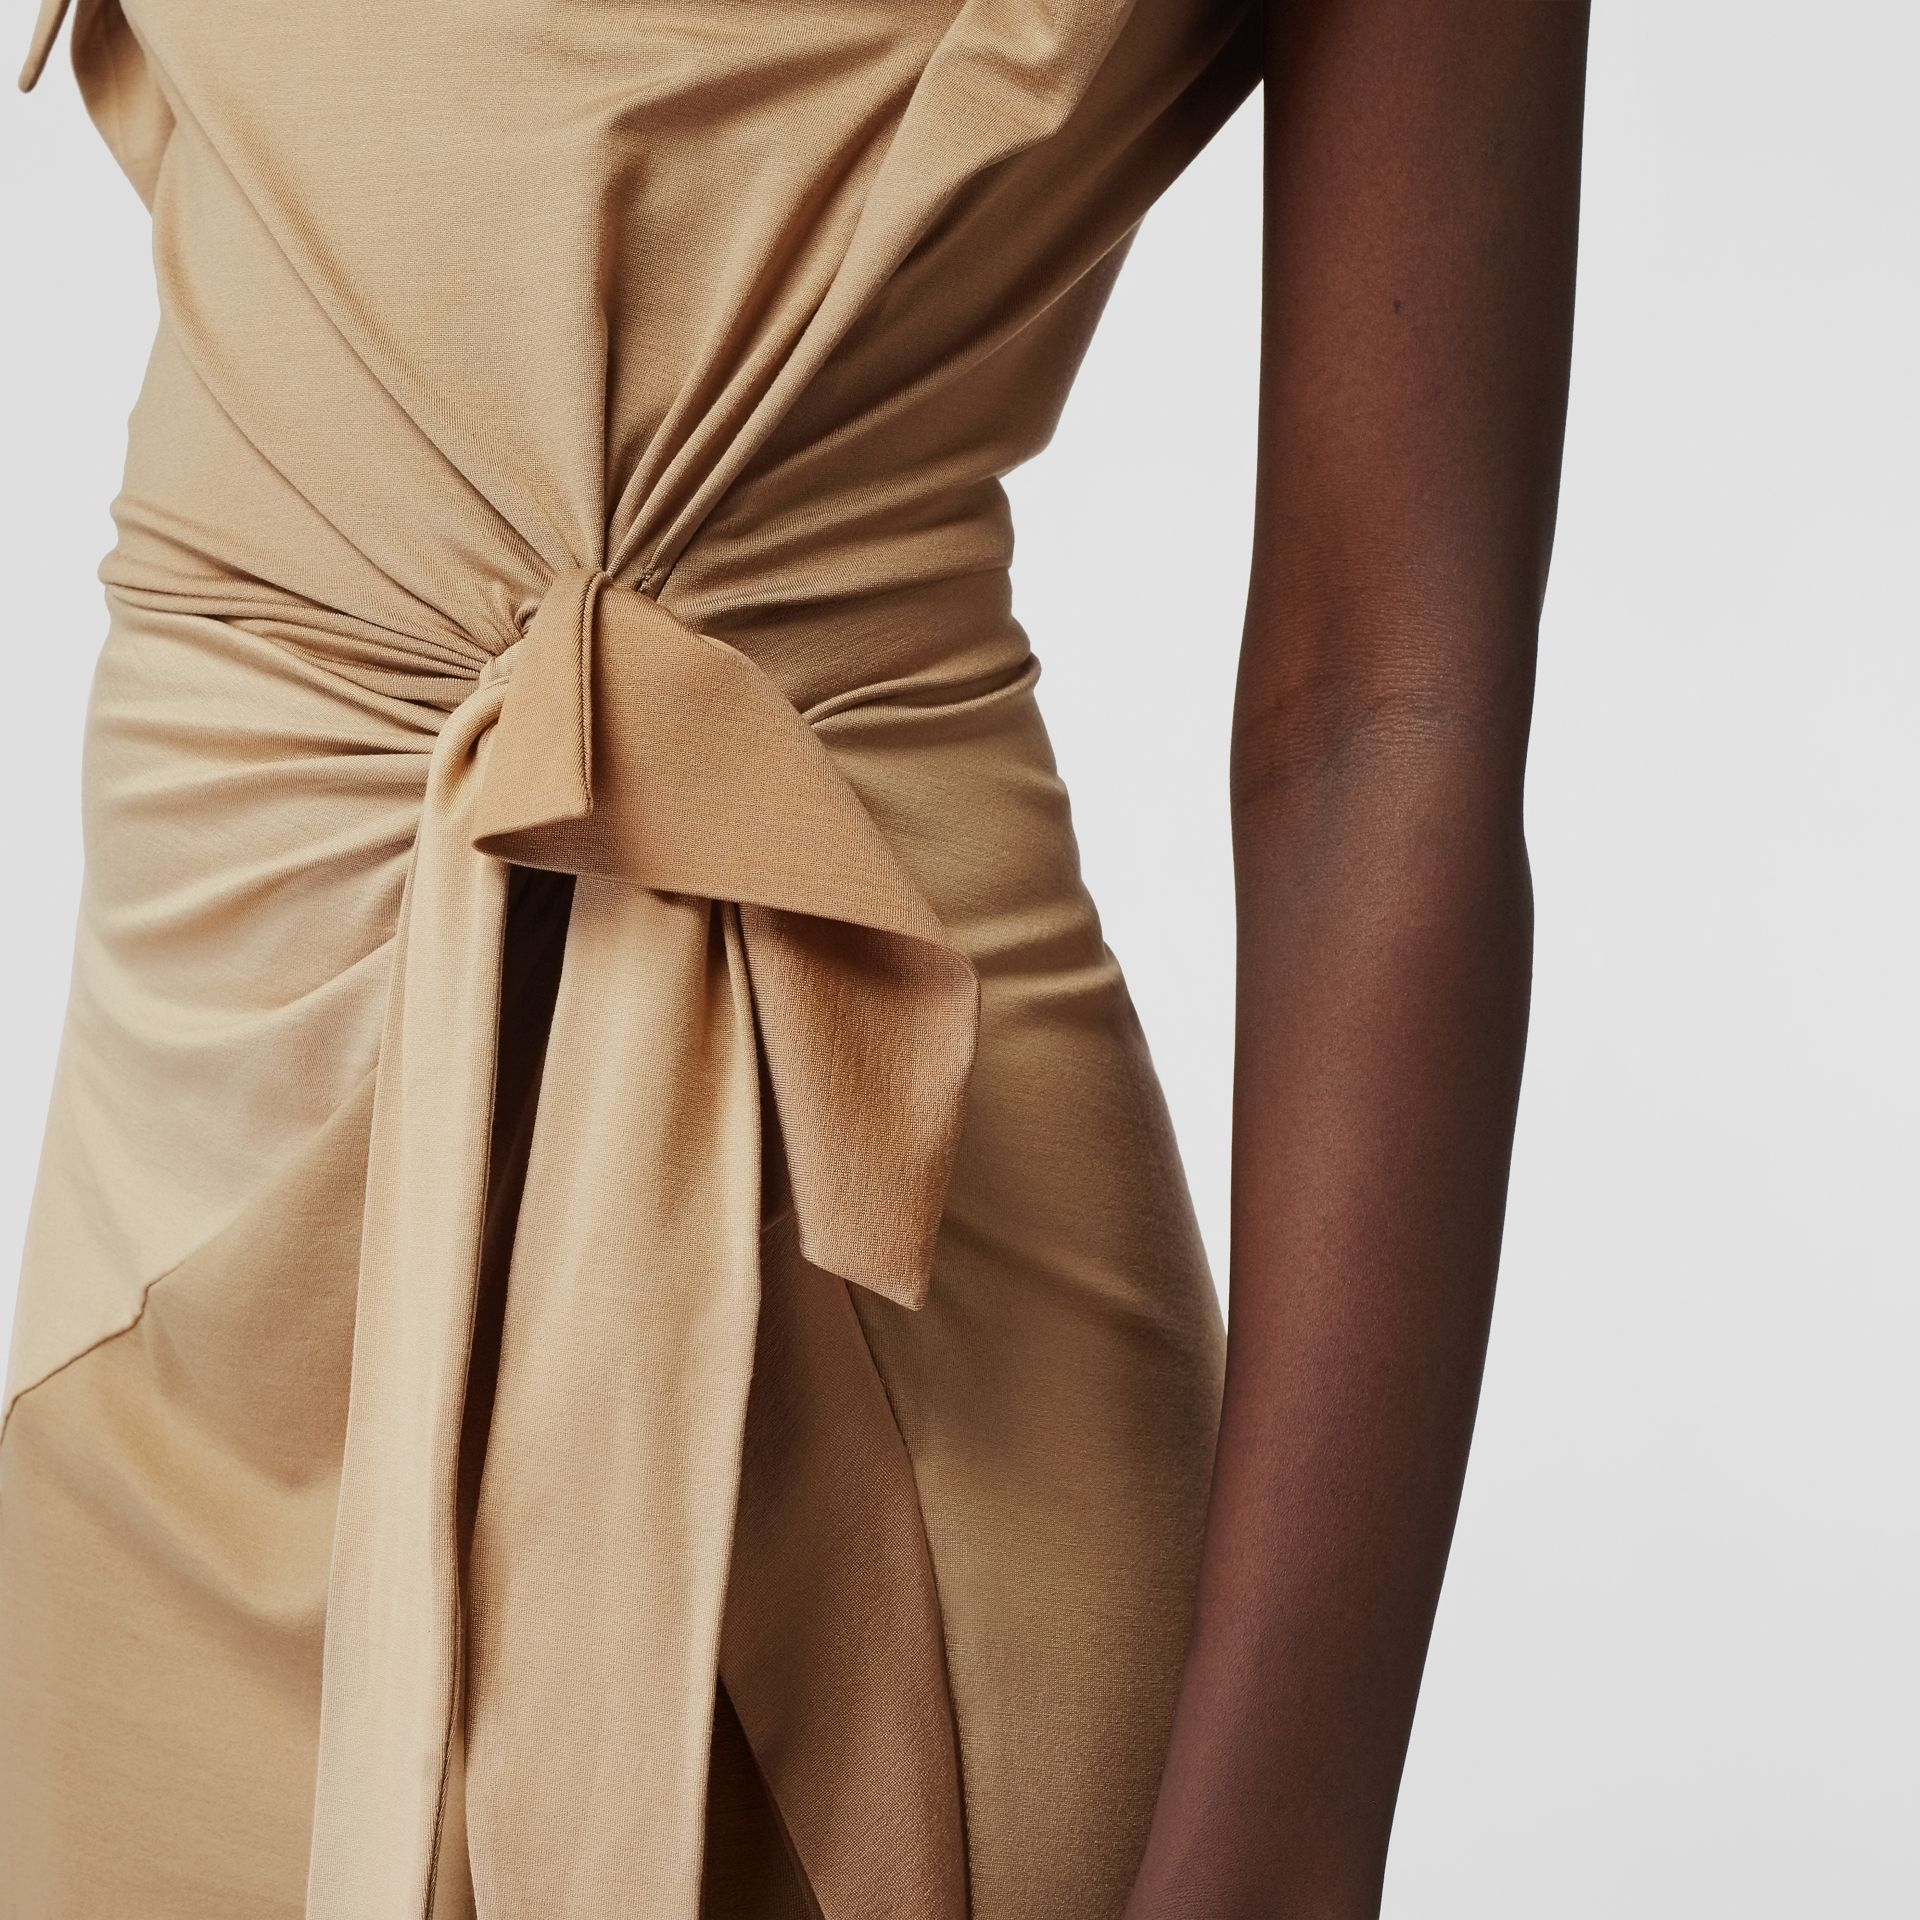 Tie Detail Tri-tone Silk Jersey Dress in Wheat - Women | Burberry United States - gallery image 6